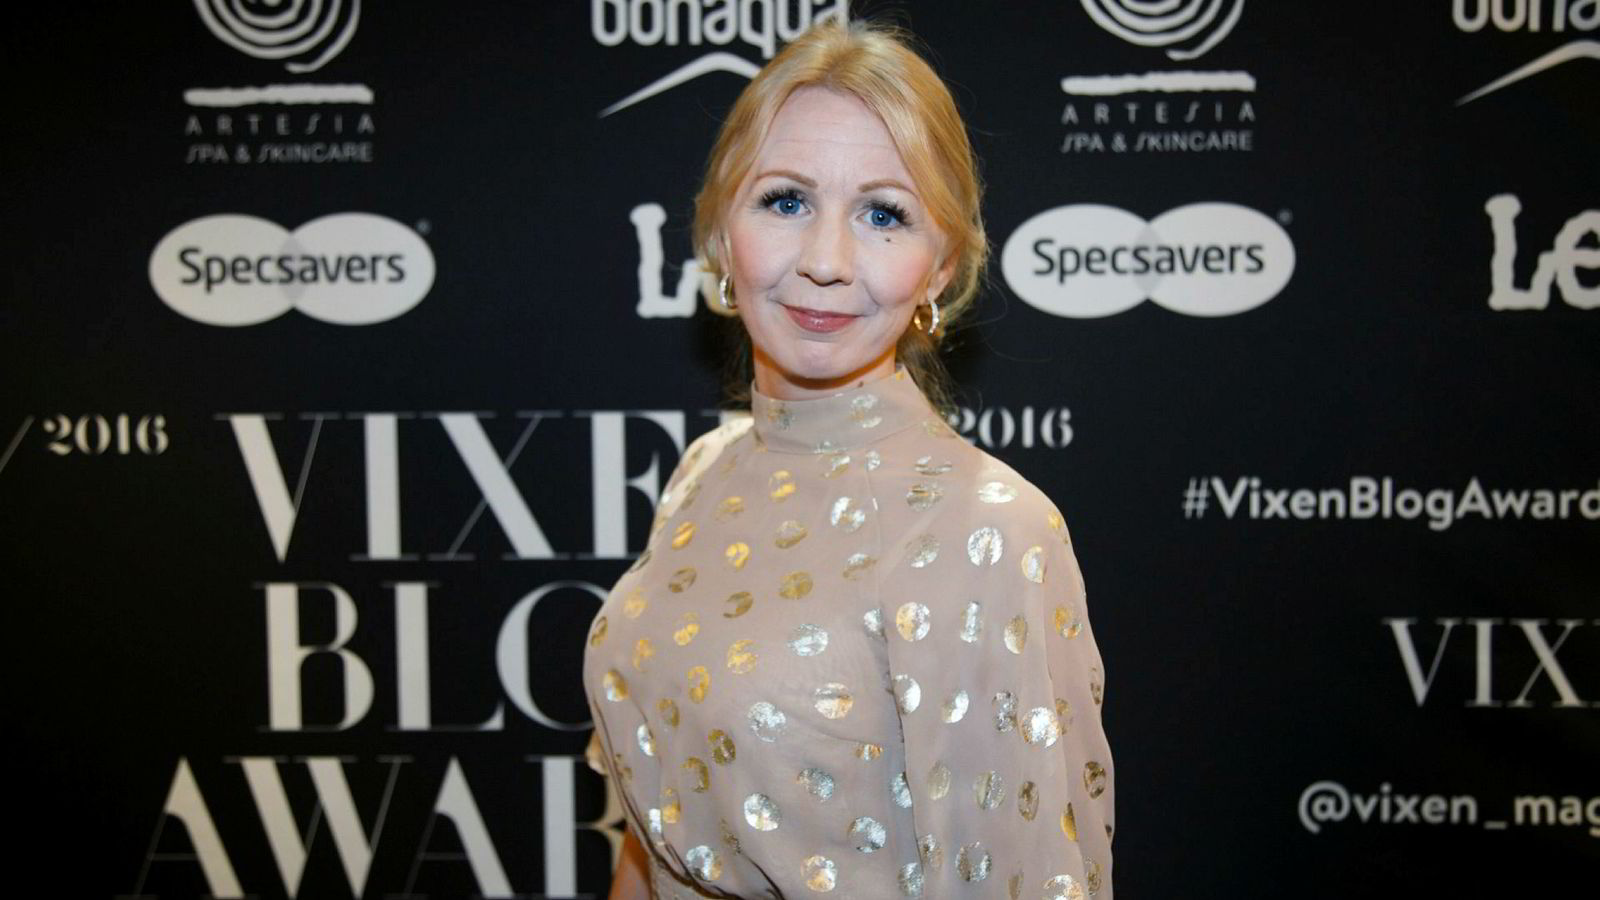 Blogger Anne Brith Davidsen ankommer Vixen Blog Awards 2016 på Grand Hotel.